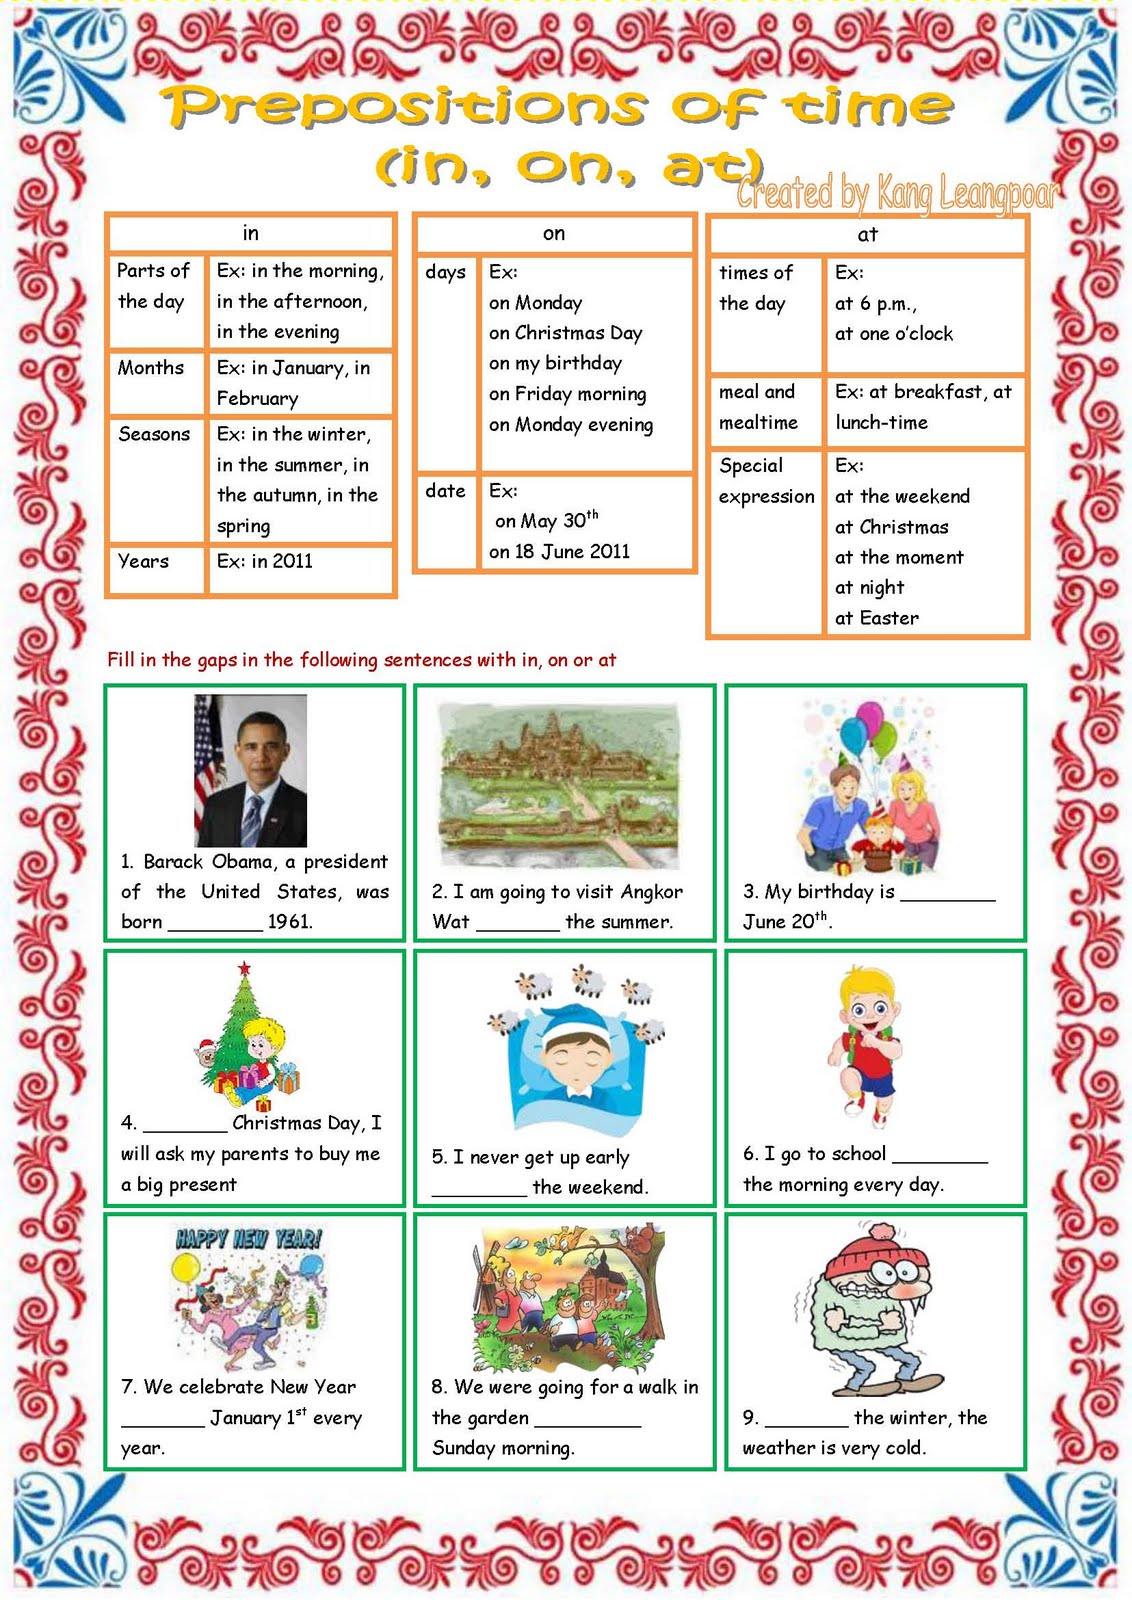 worksheet Prepositions Of Time Worksheet preposition of time worksheet esl english teaching worksheets kang leangpoar